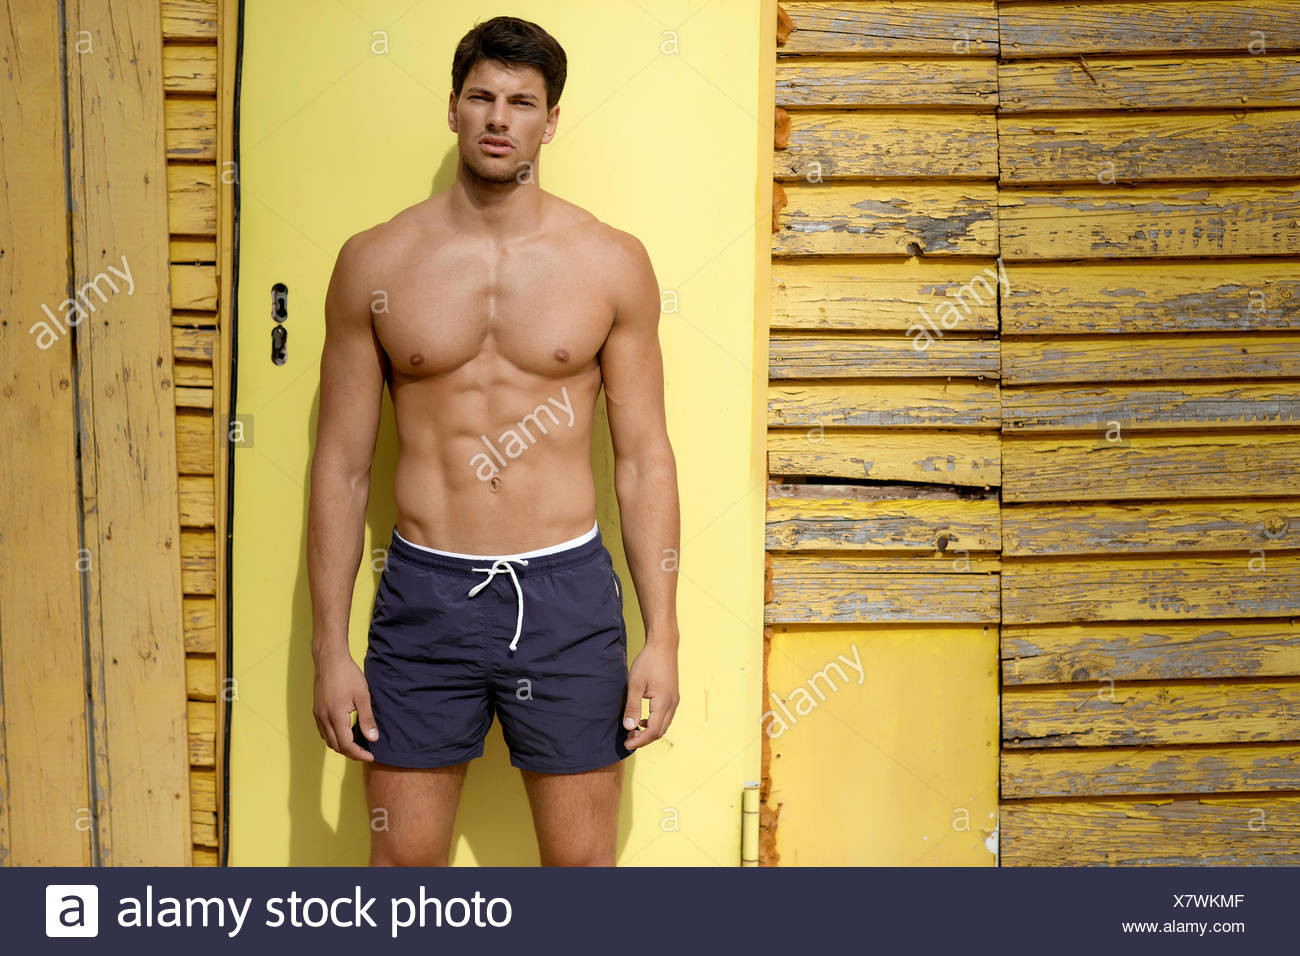 Portrait of athletic young man standing in front of yellow wooden wall - Stock Image